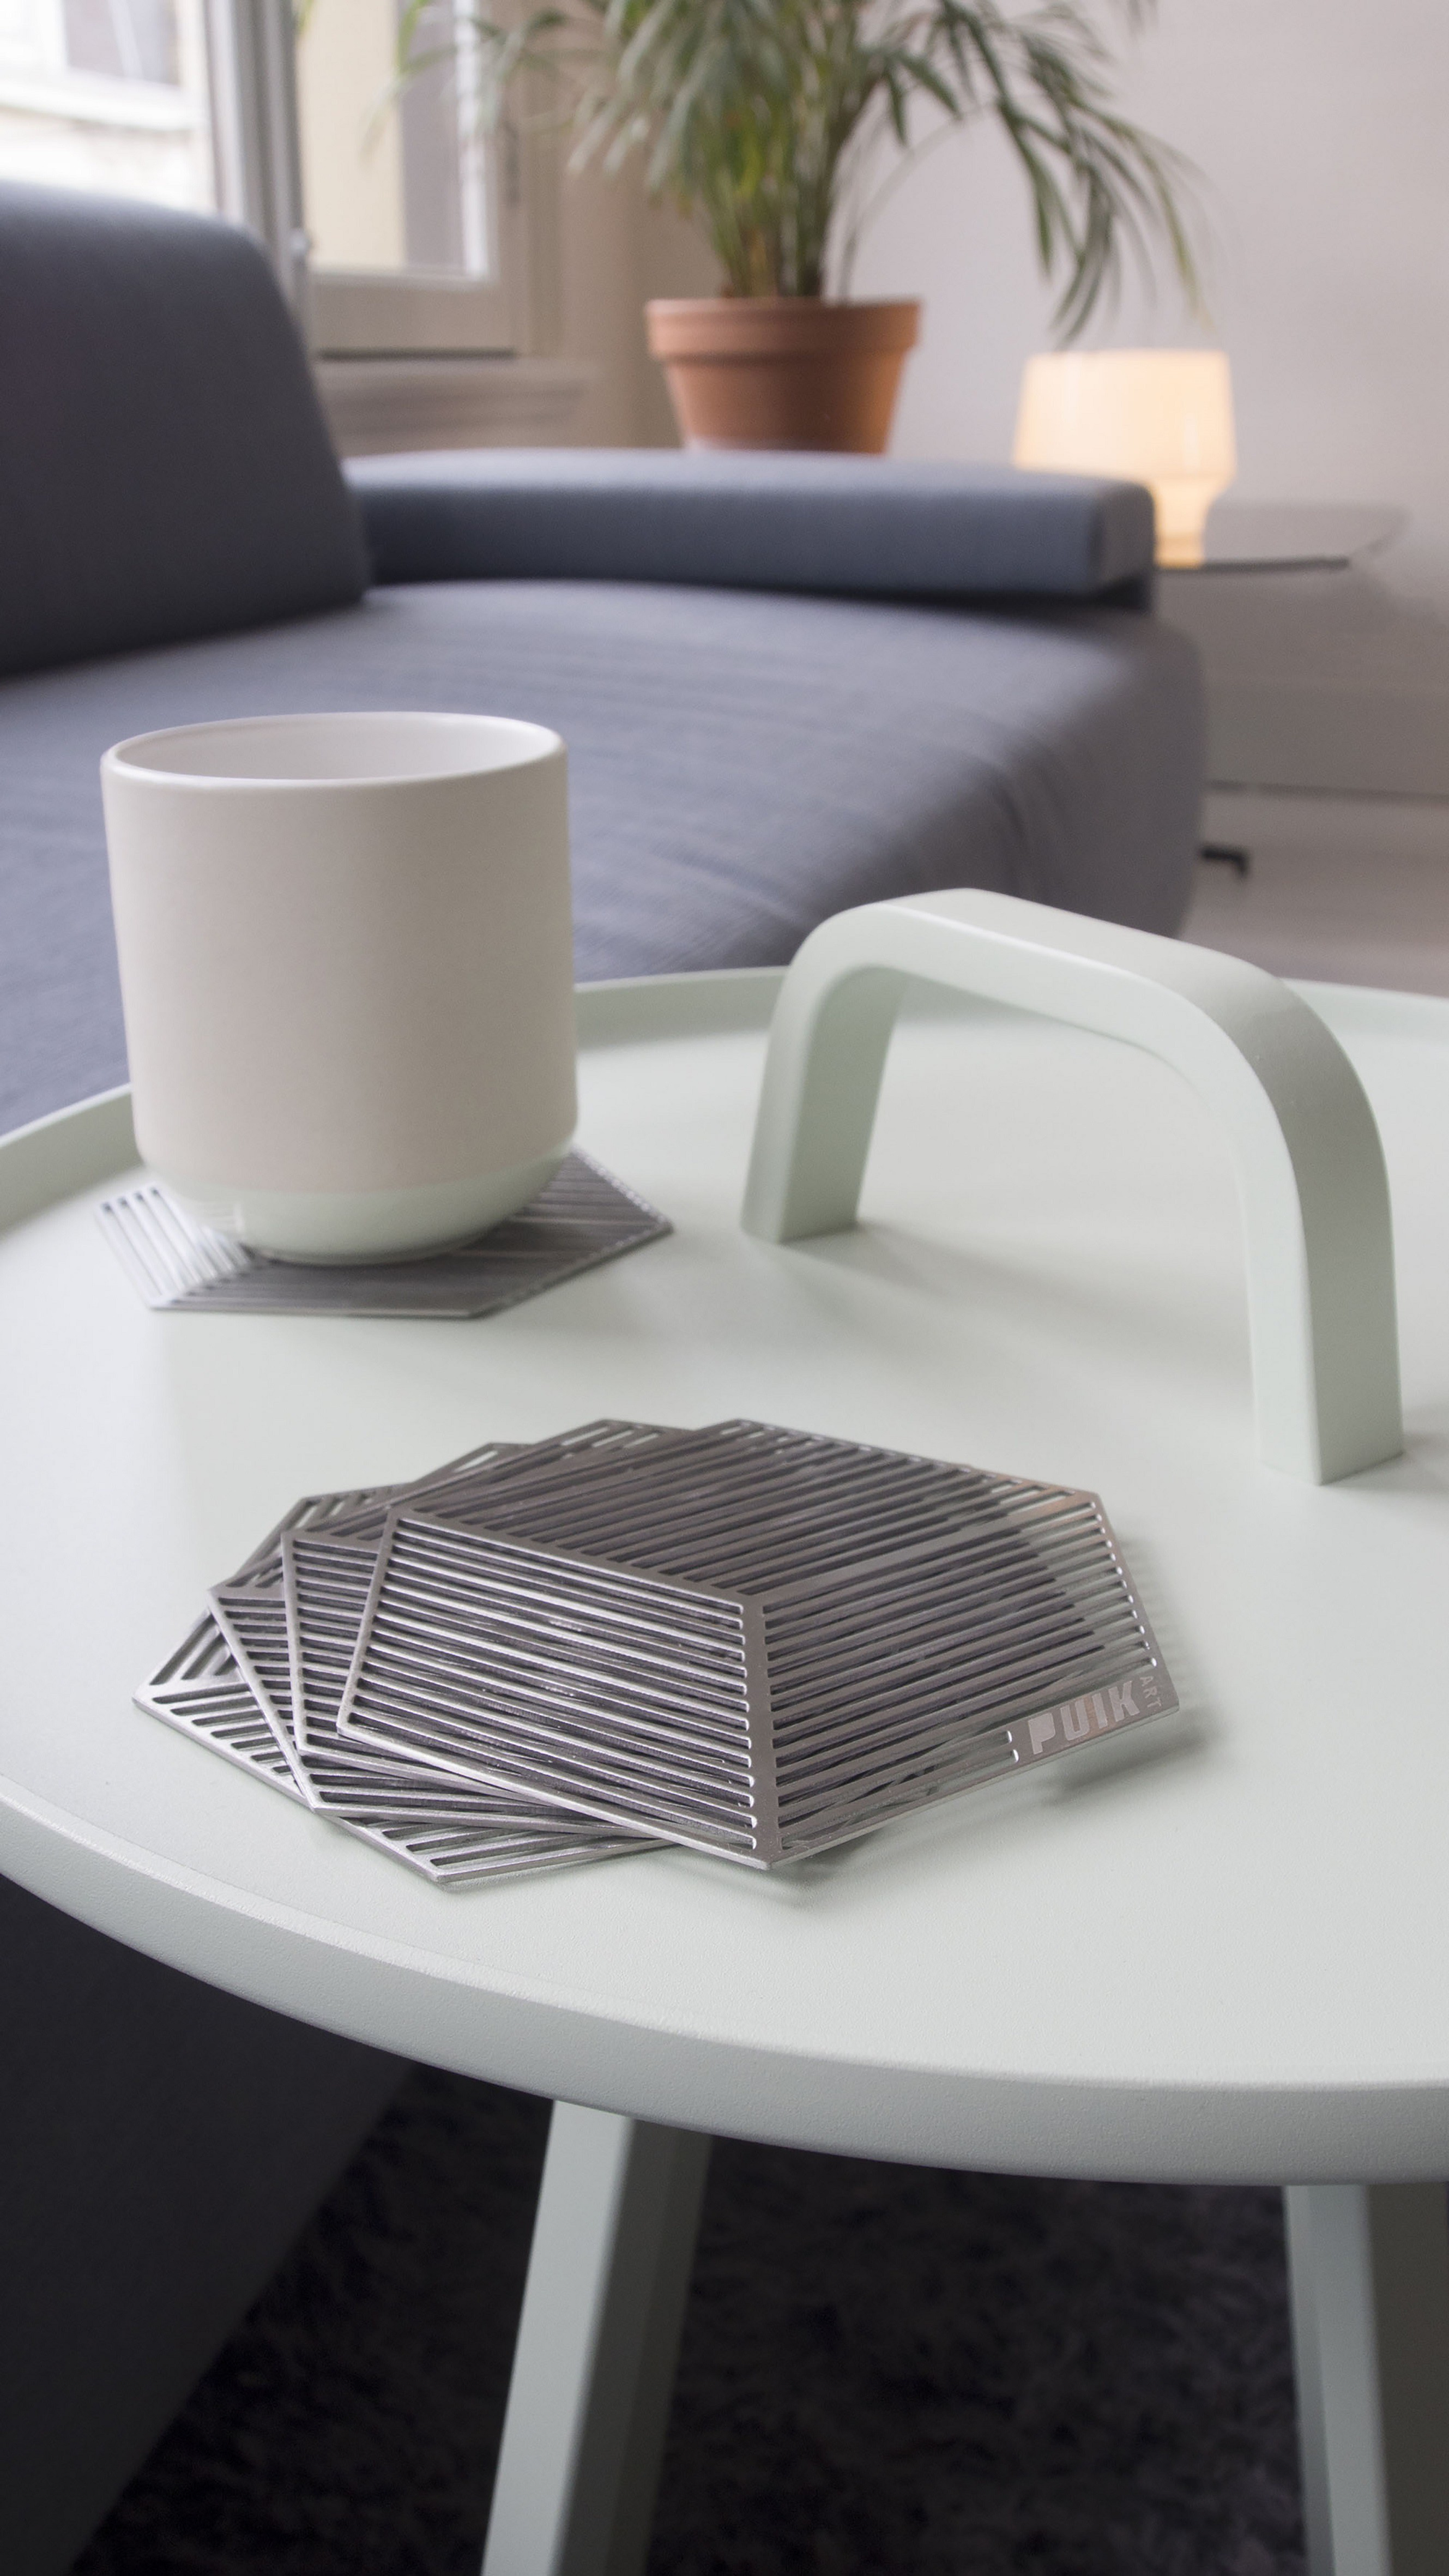 purchase seco stainless steel coasters at shophollandcom -  seco designer coasters ideal gift for christmas